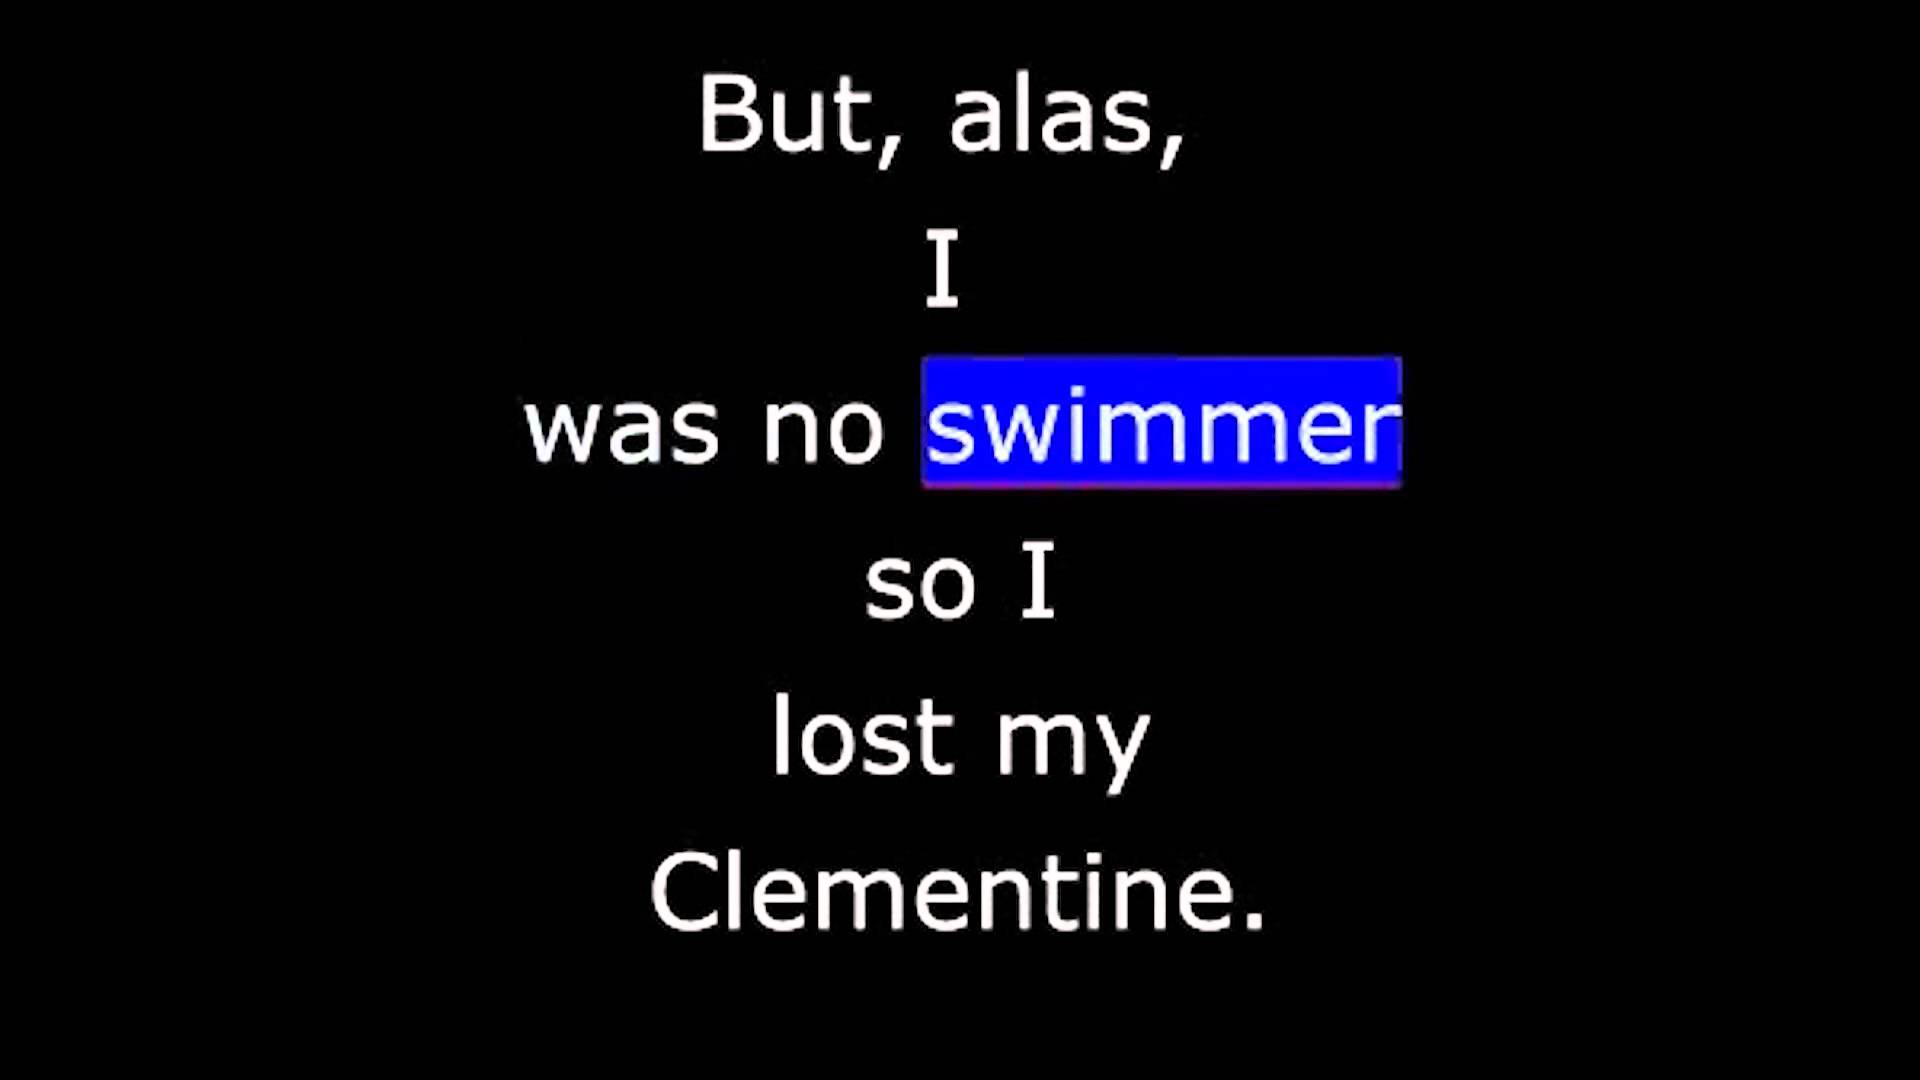 Songs - Oh My Darlin' Clementine - YouTube